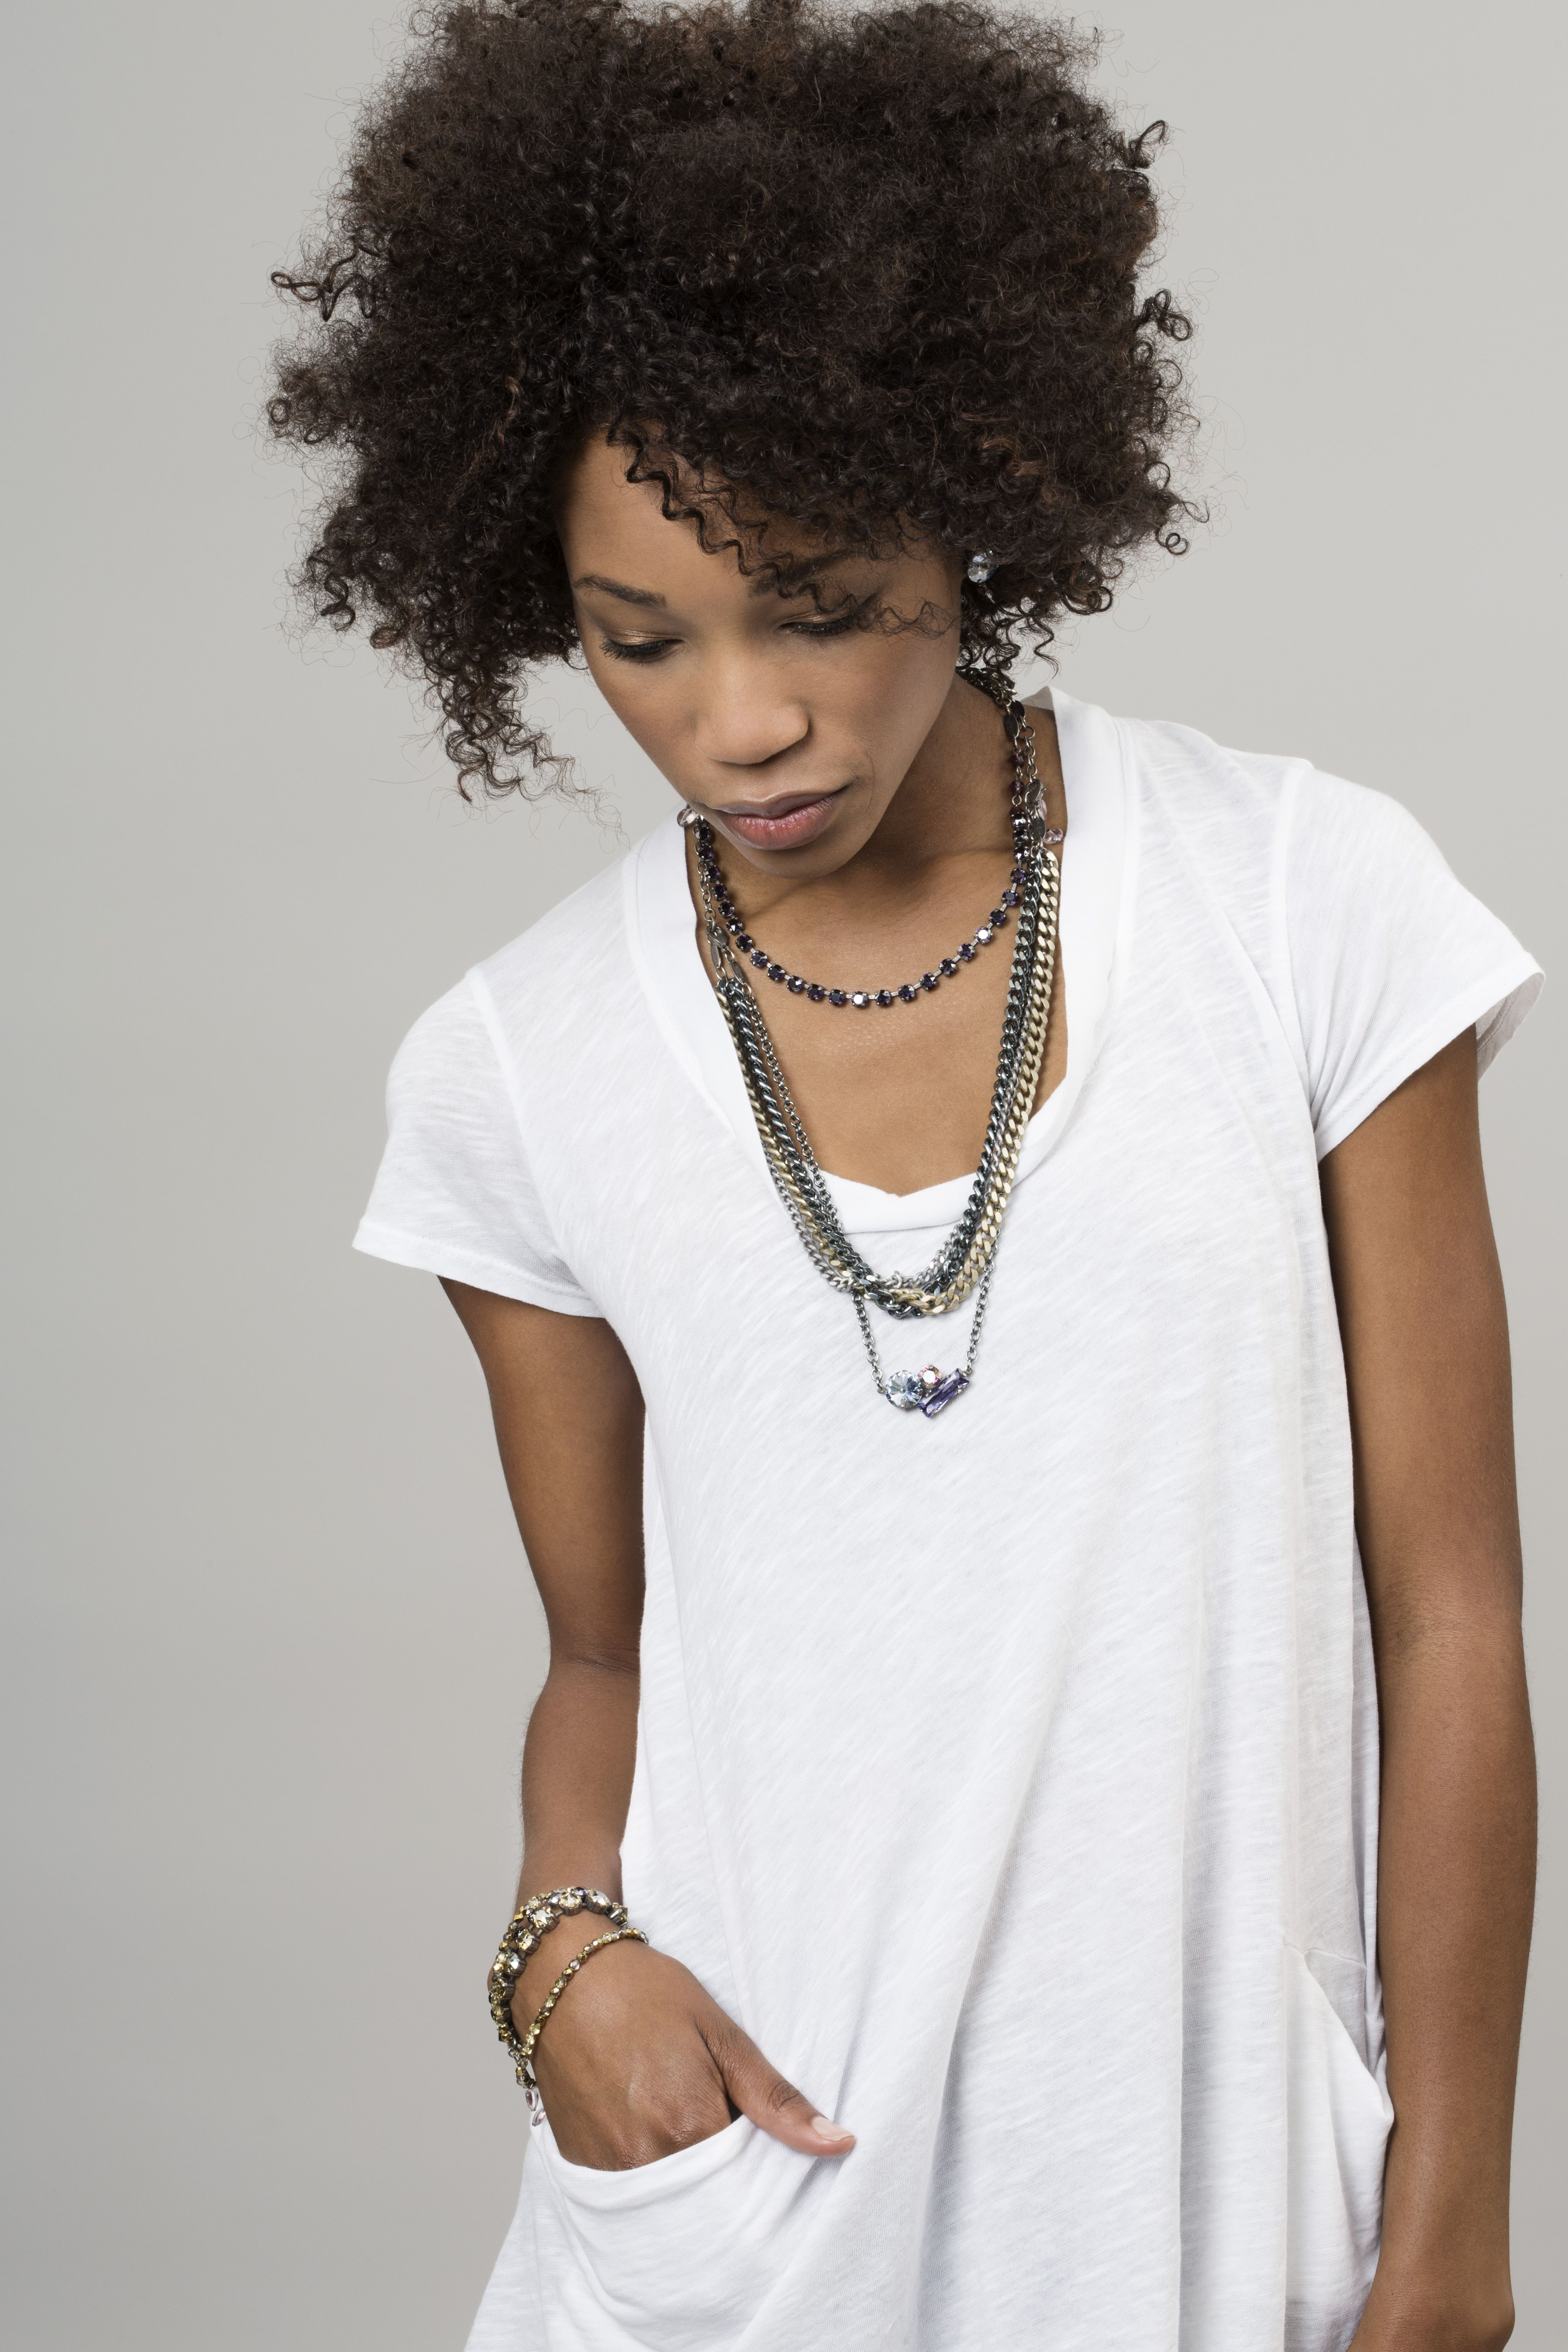 Sabika look necklace - Kamla S Casual White Look Connect Undercover Cluster Necklace With Impact 3 Row Necklace And